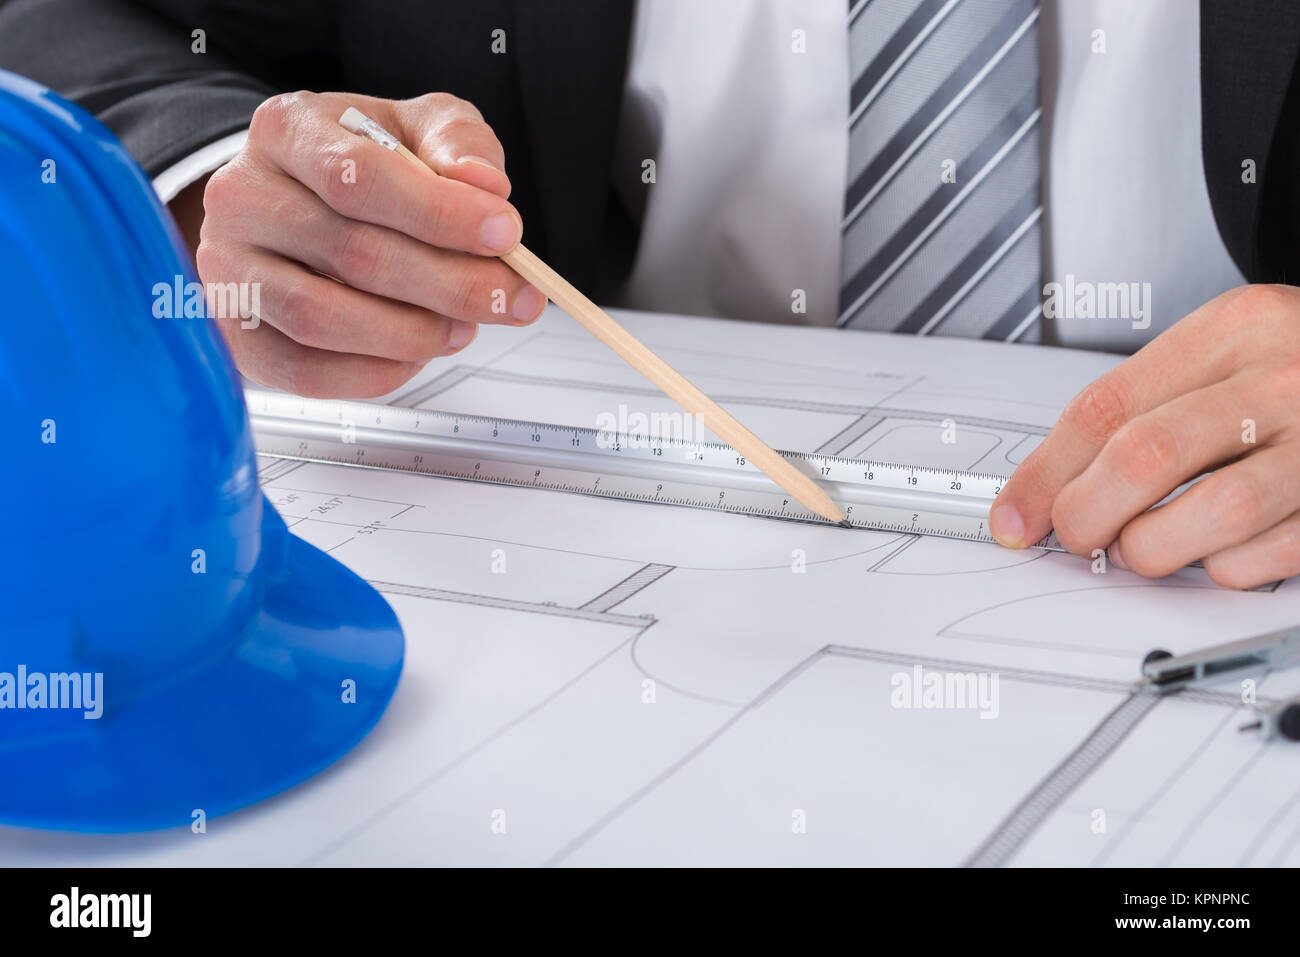 Architecture blueprint blue pencil on stock photos architecture male architect hand using pencil and ruler on blueprint stock image malvernweather Gallery